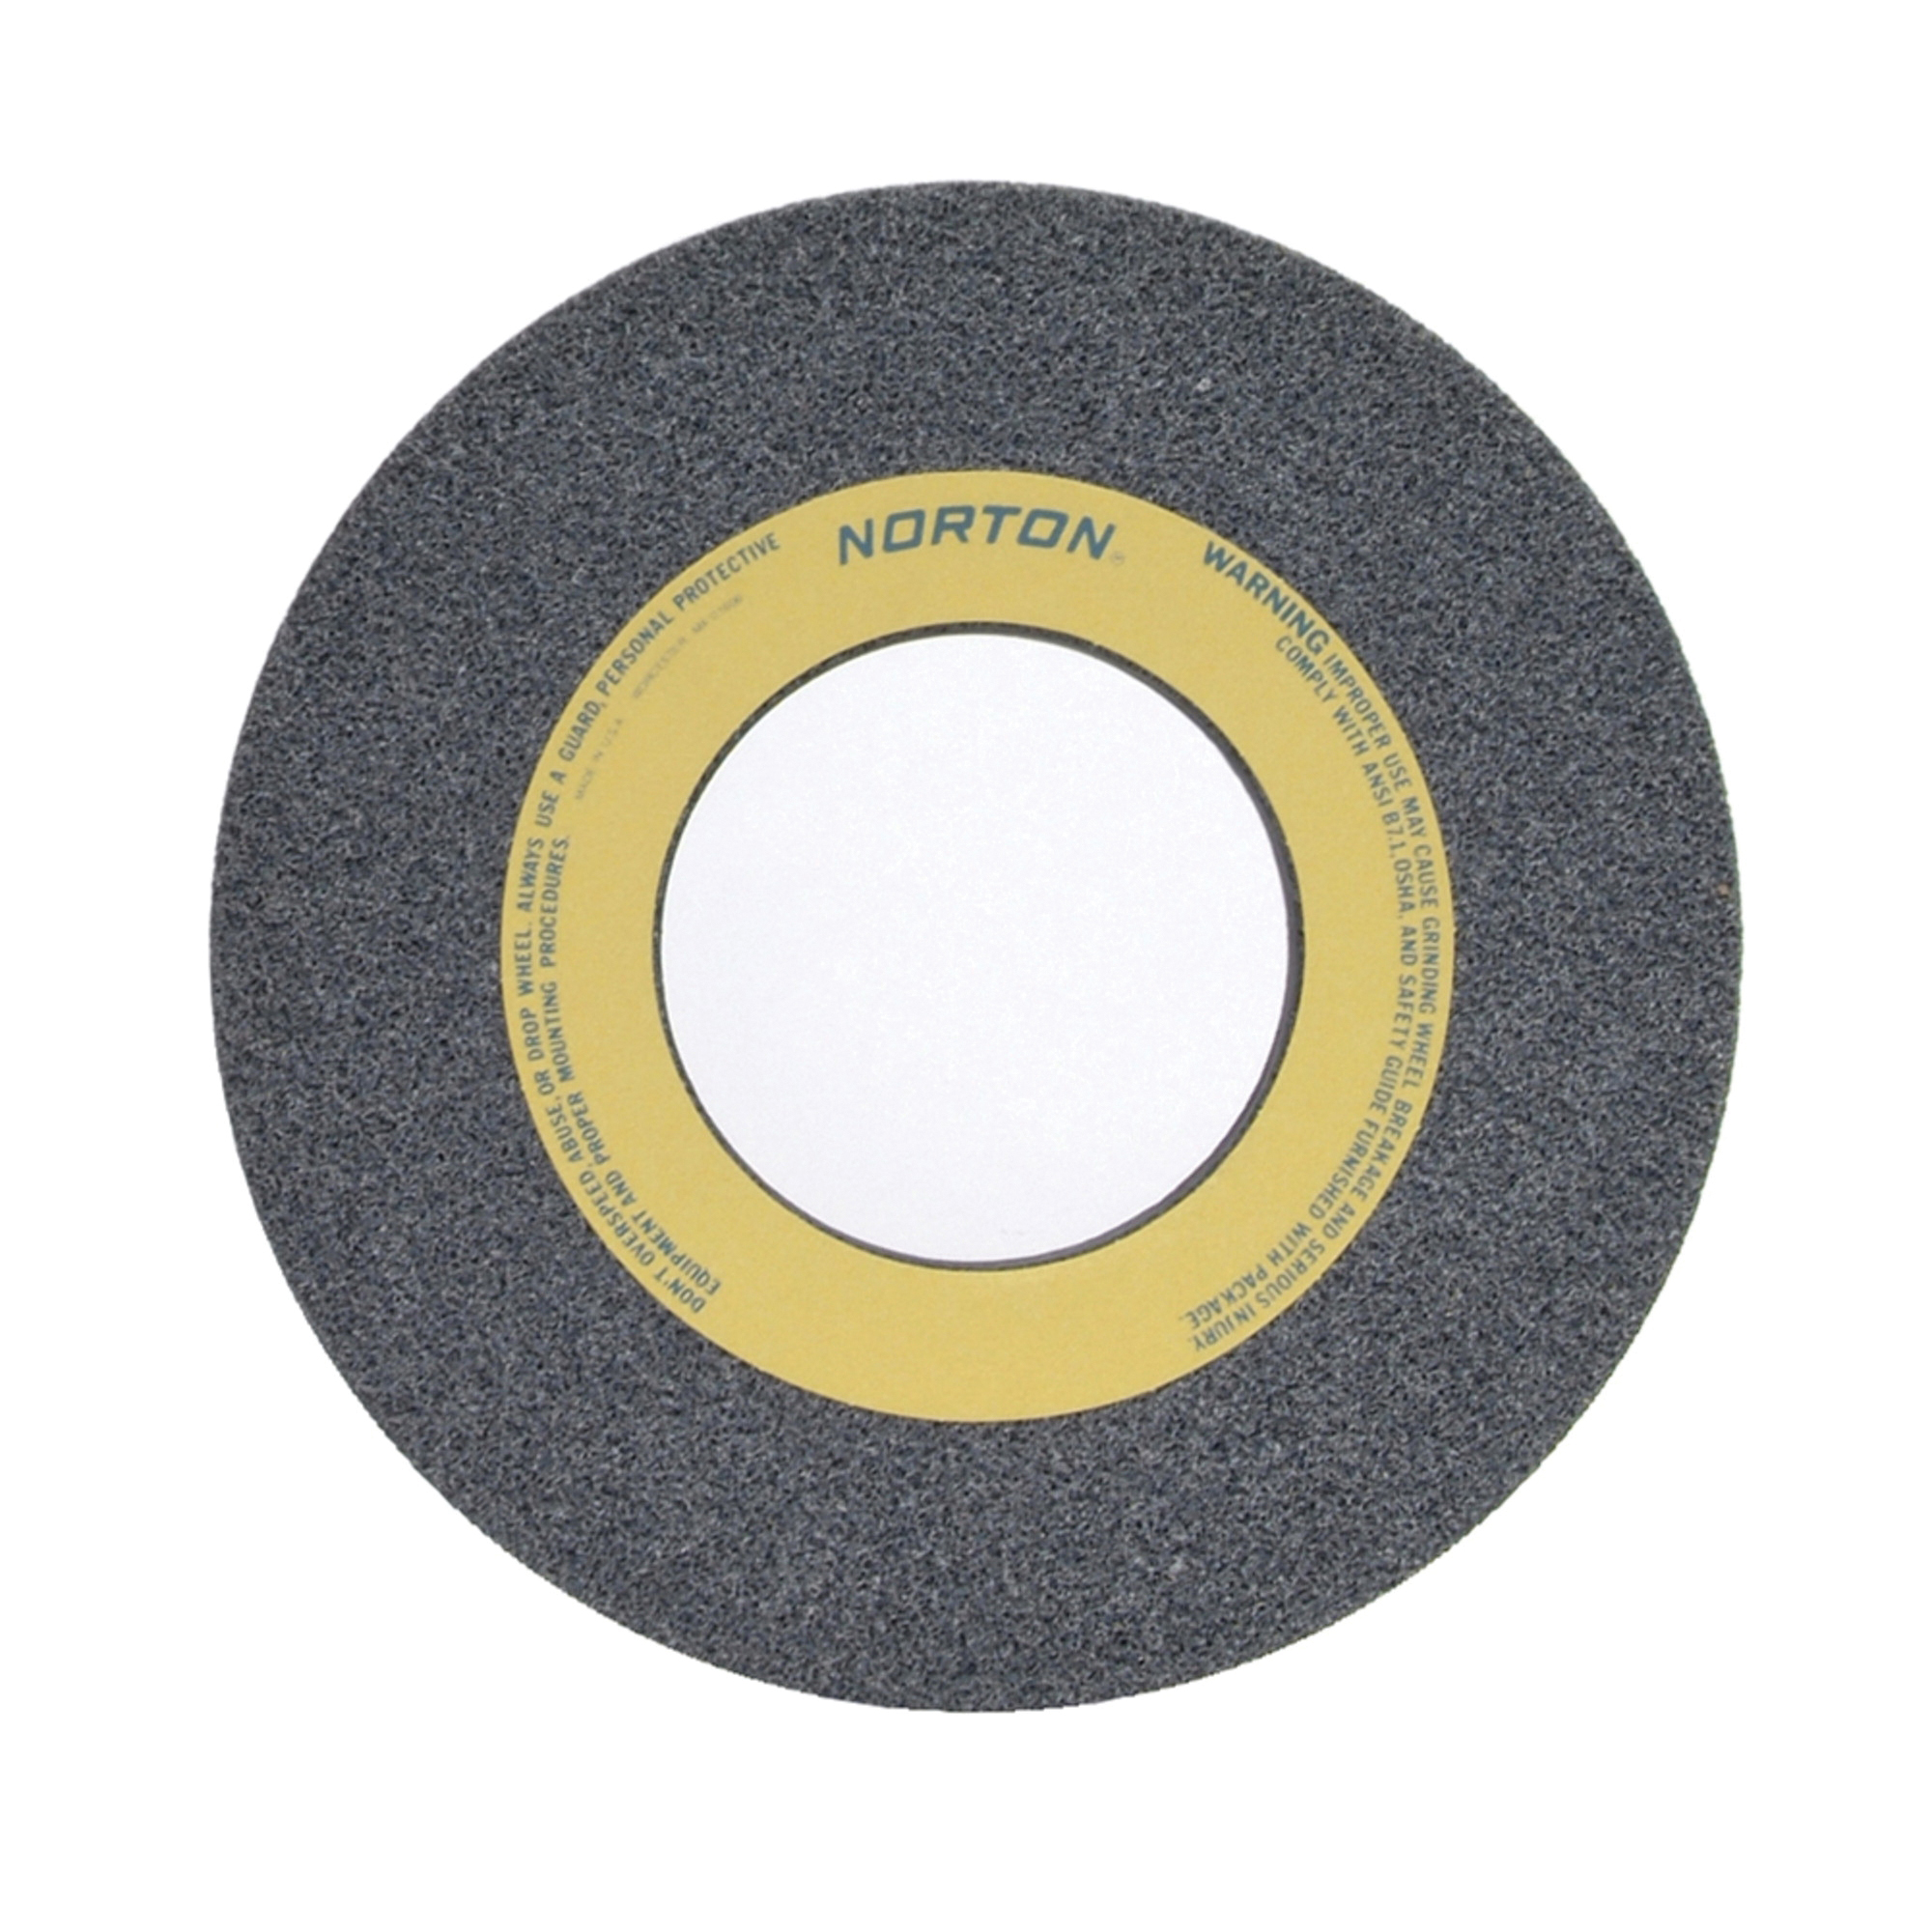 Norton® 66253364336 32A Straight Toolroom Wheel, 14 in Dia x 1-1/2 in THK, 5 in Center Hole, 46 Grit, Aluminum Oxide Abrasive